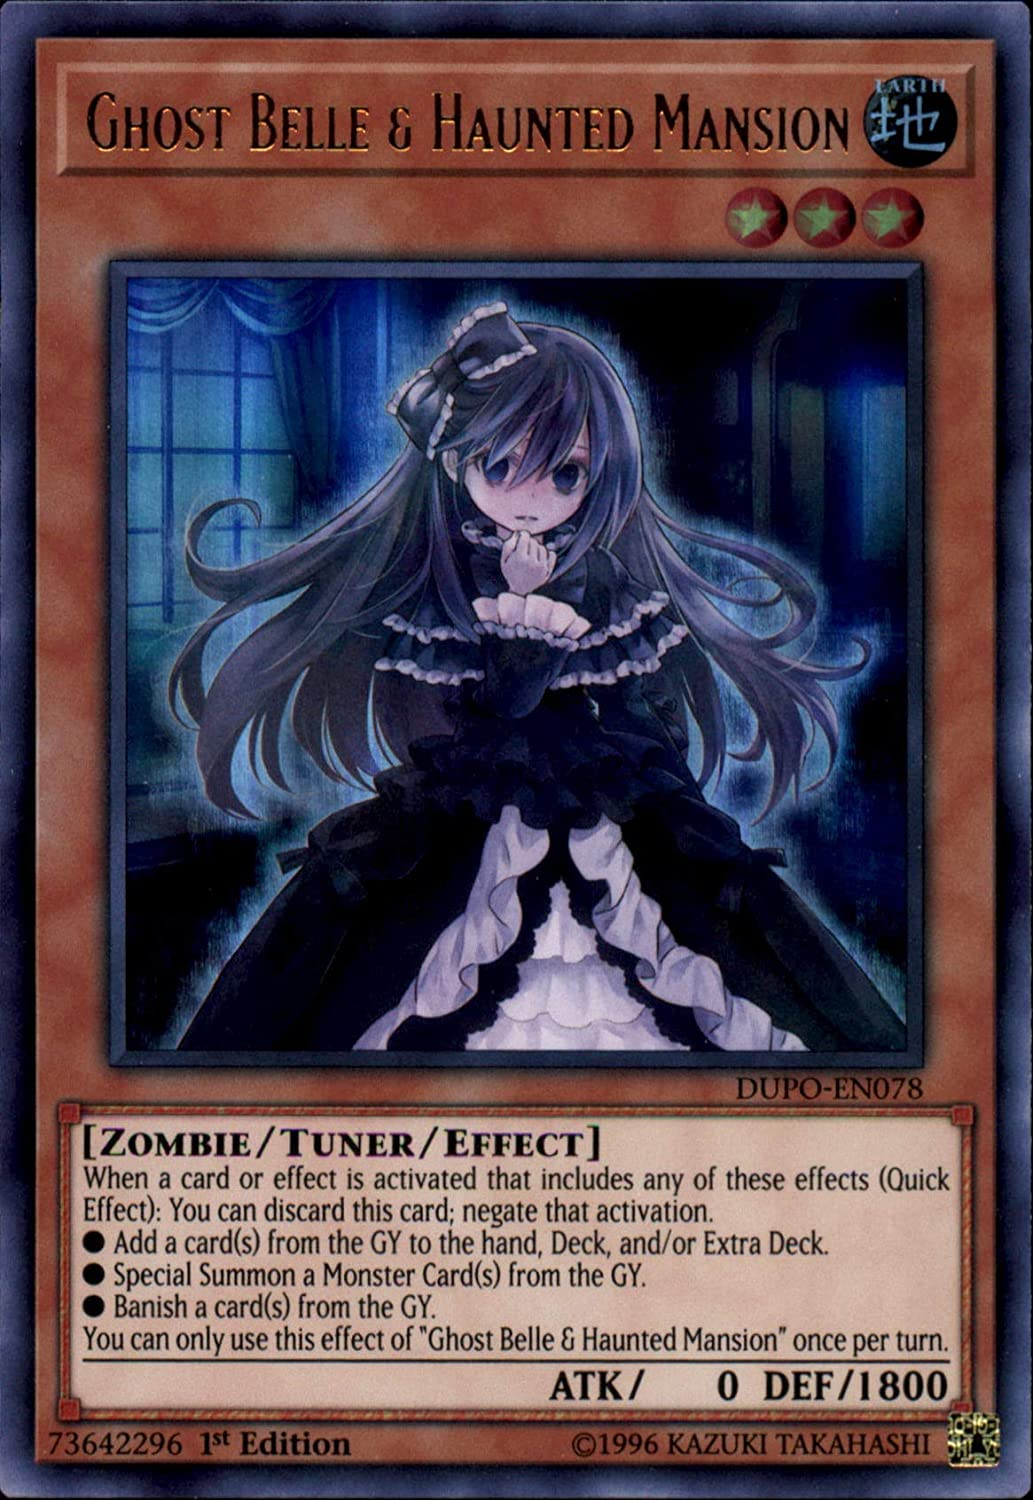 *** GHOST BELLE /& HAUNTED MANSION *** ULTRA RARE DUPO-EN078 YUGIOH!